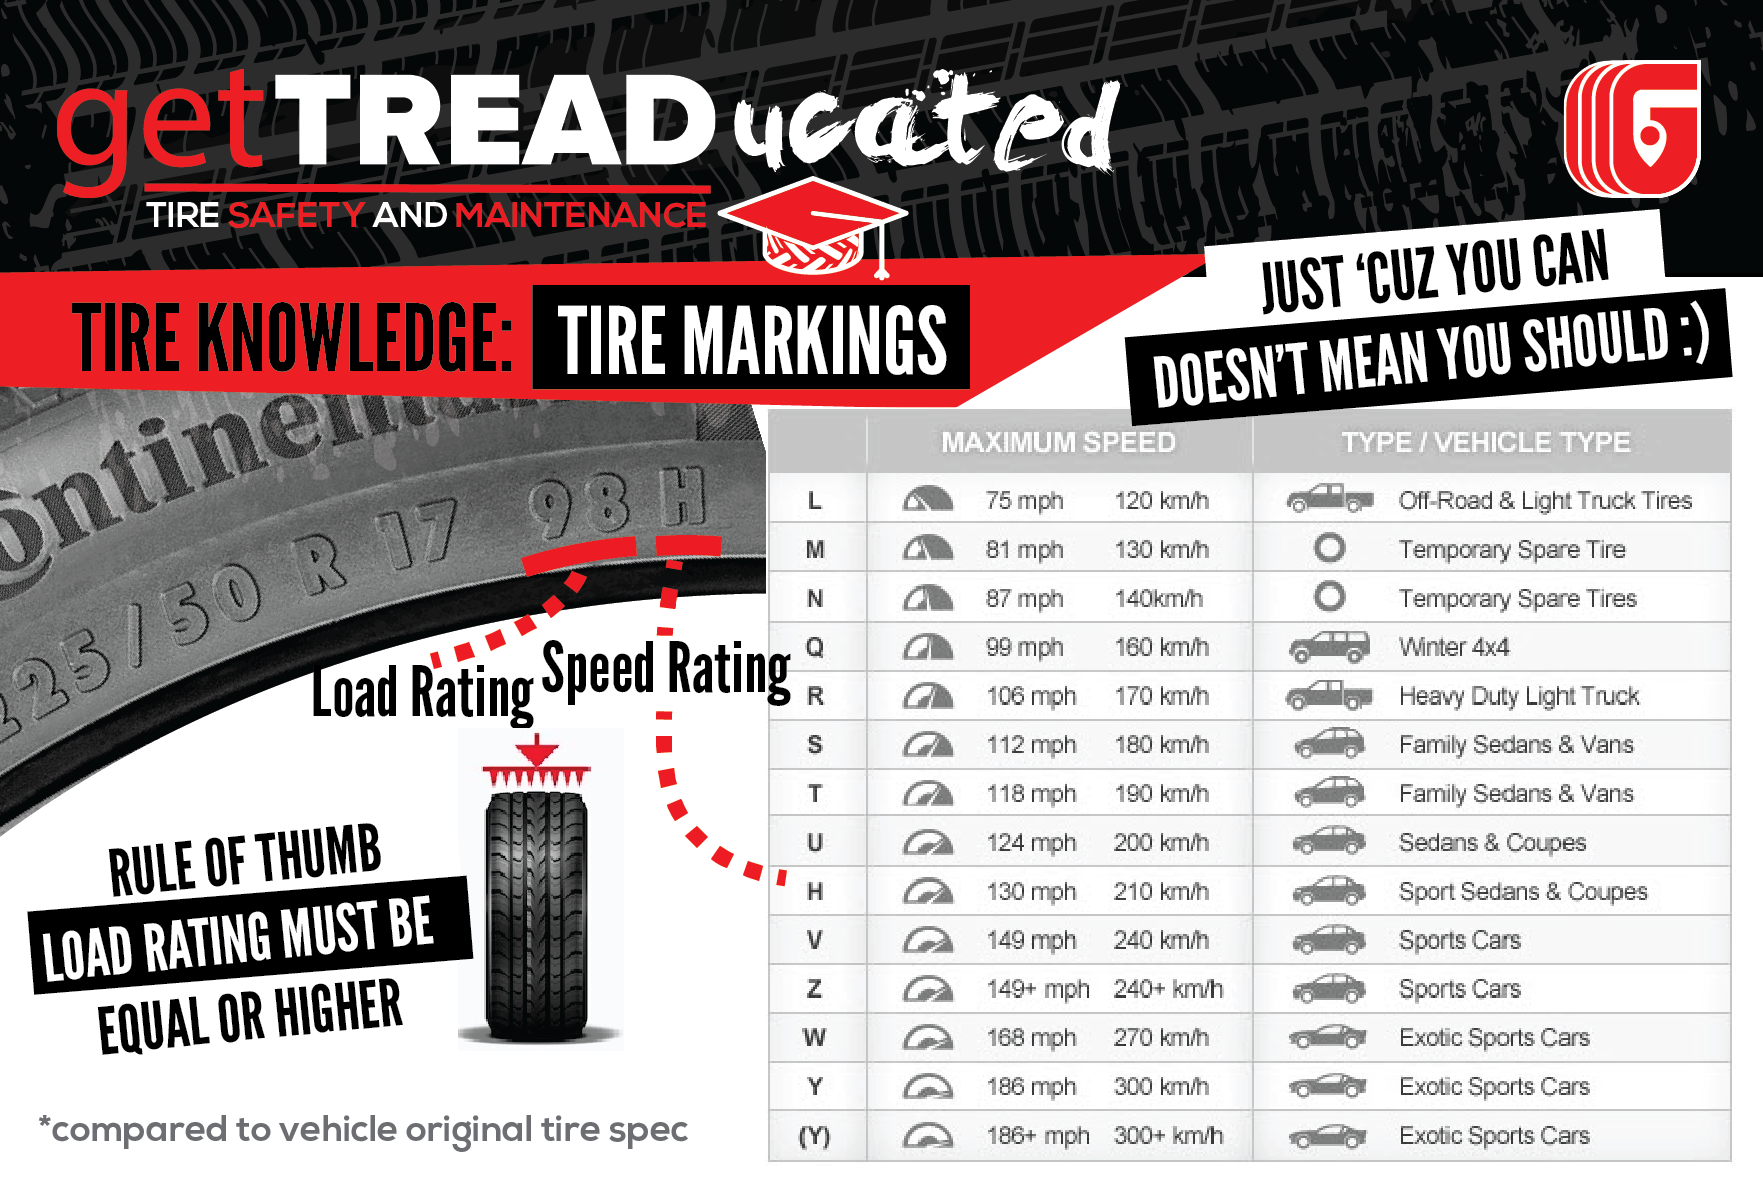 How To Read A Tire >> How To Read A Tire Part 2 Of 2 Gettread Mobile Tire Shop